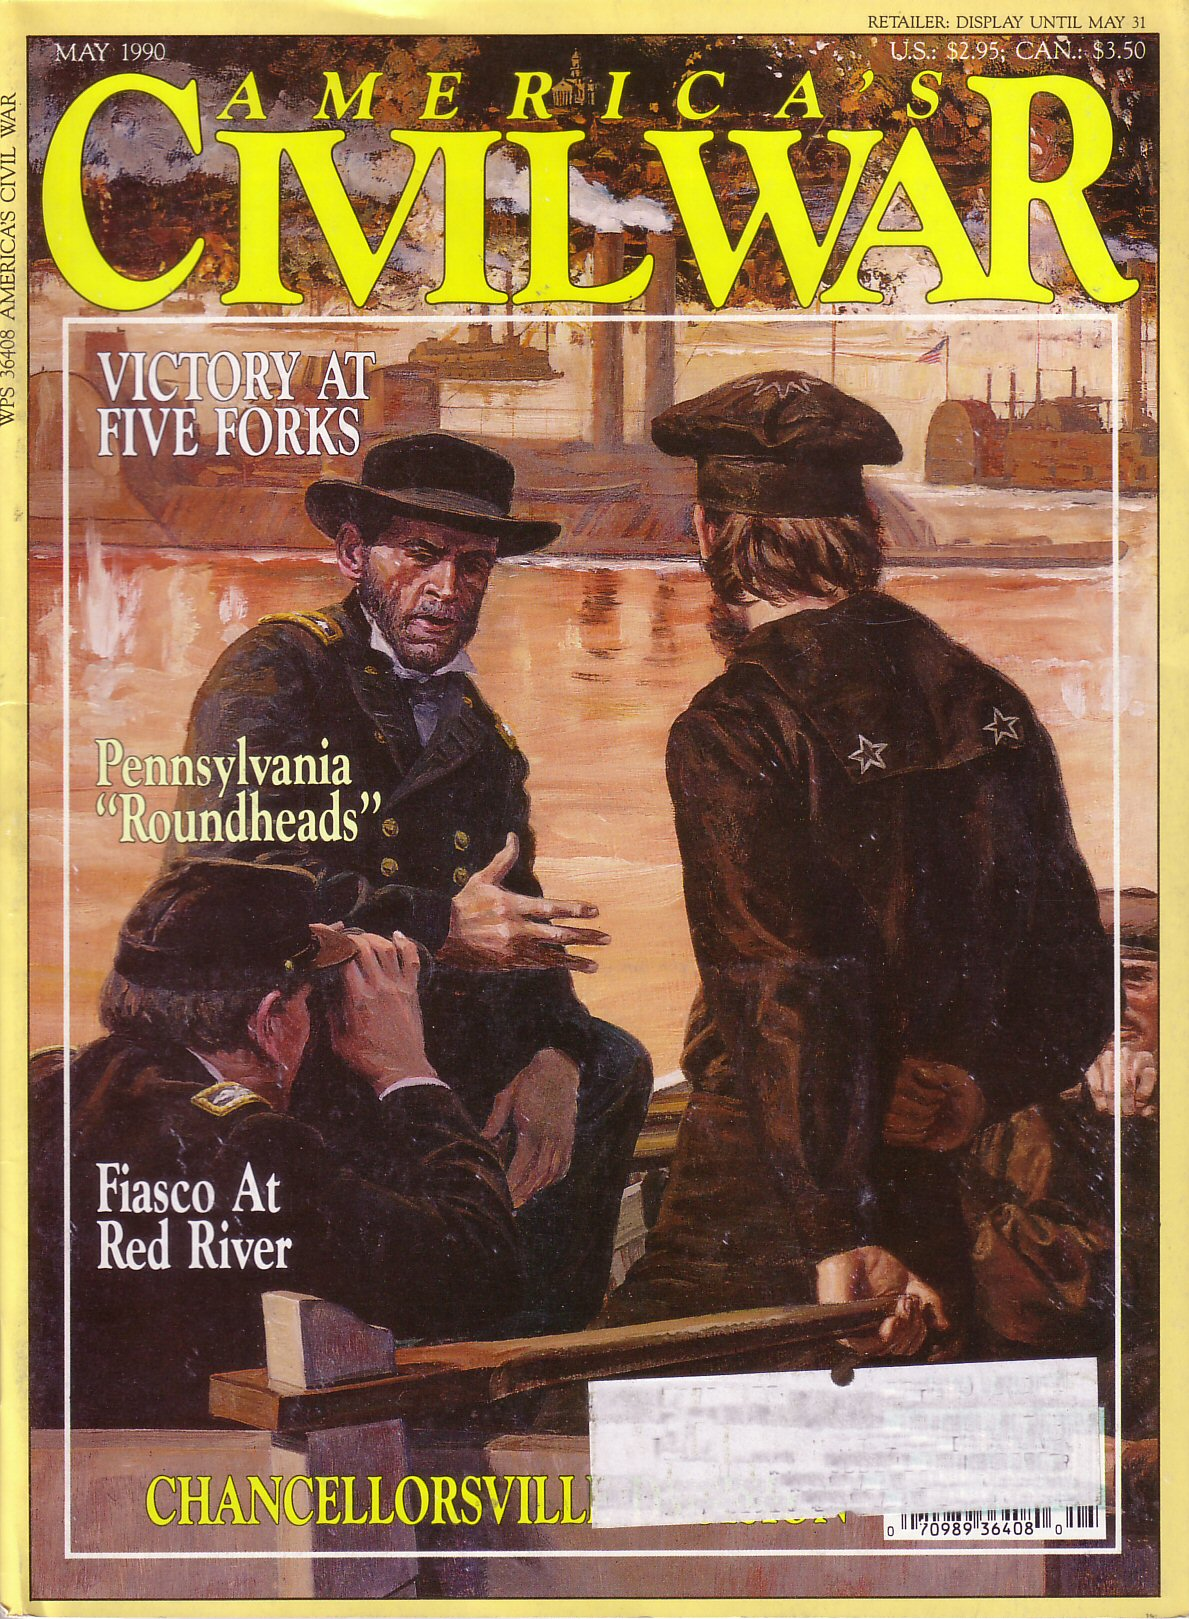 Americas Civil War, Volume 3, Number 1 (May 1990)